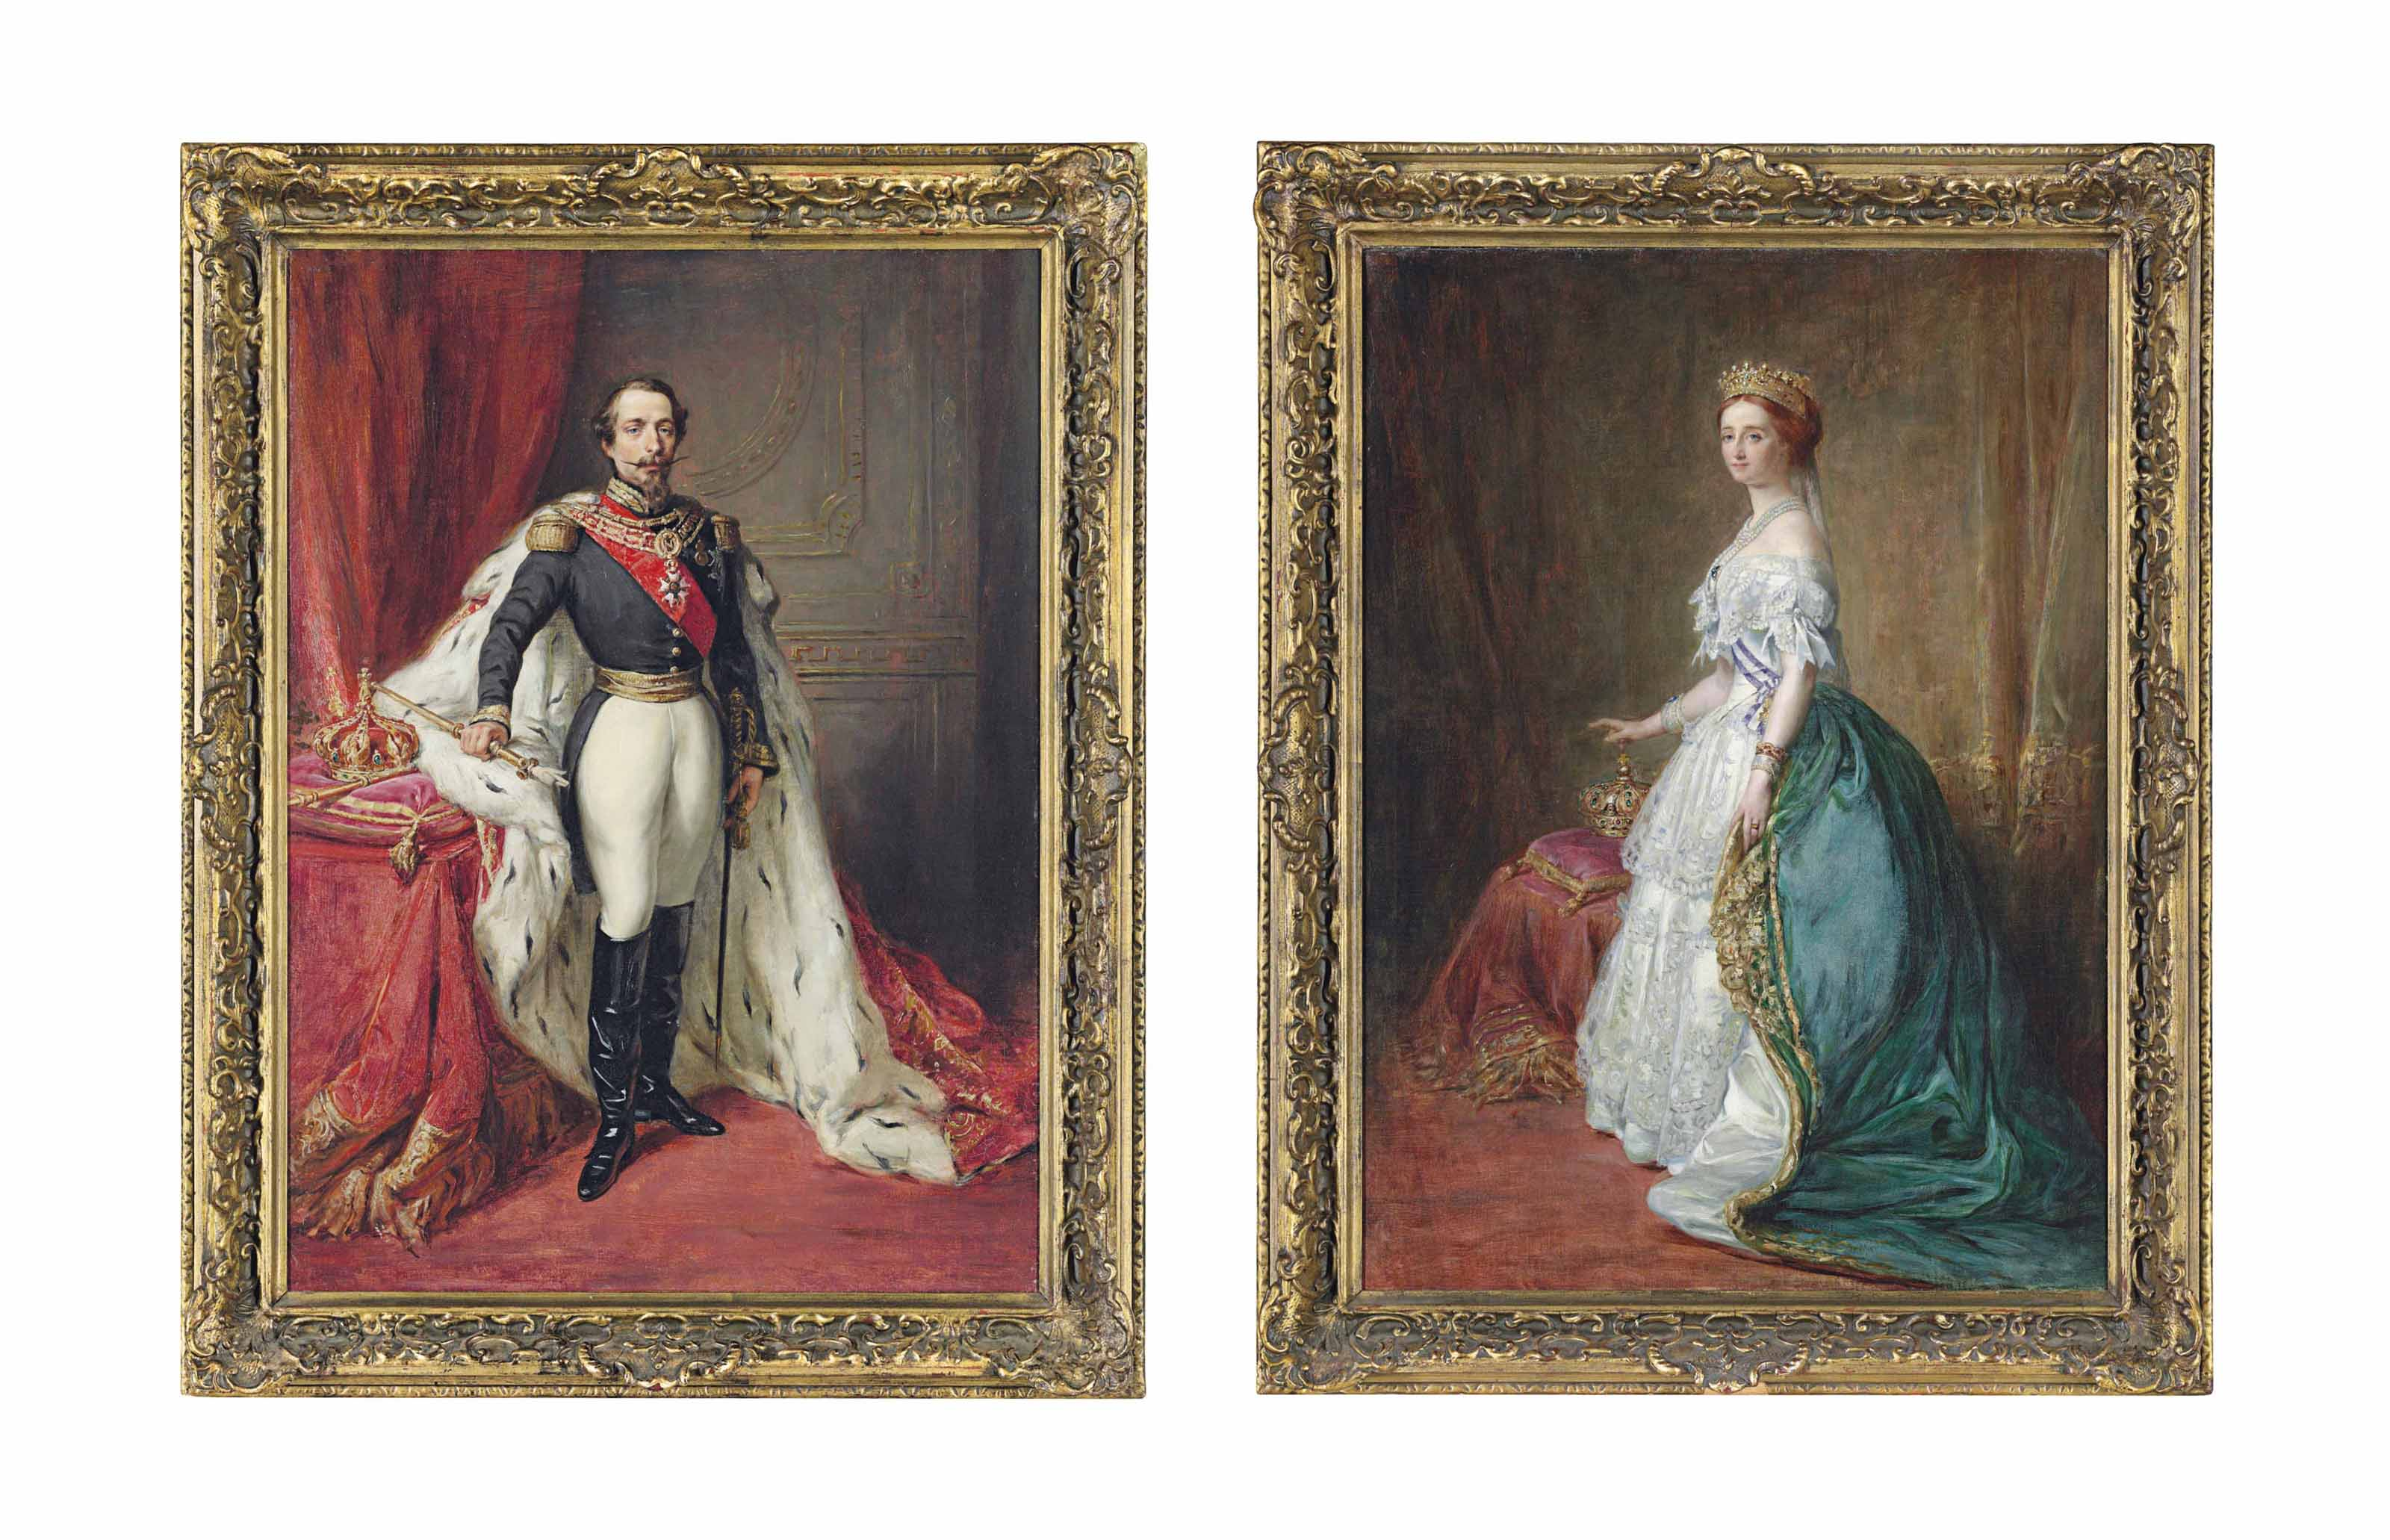 Portrait of The Emperor Napoleon III; and Portrait of his wife The Empress Eugenie